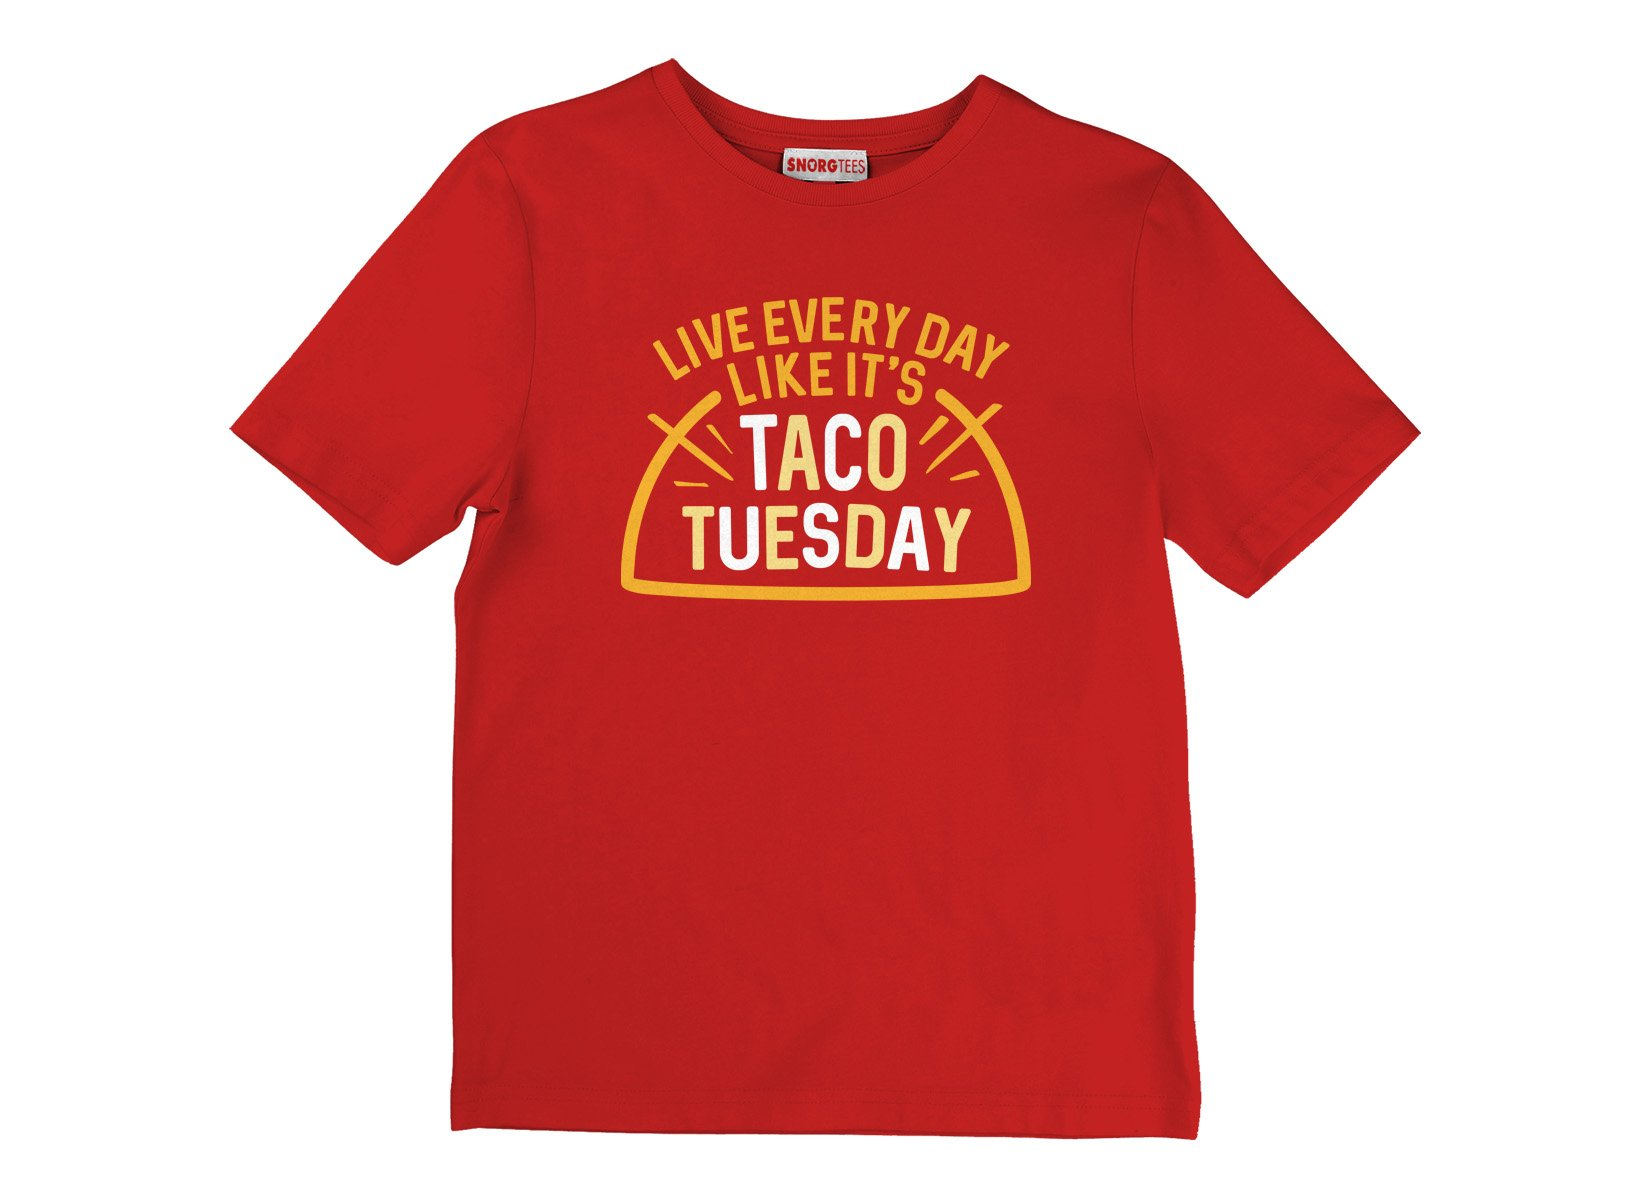 Taco Tuesday on Kids T-Shirt